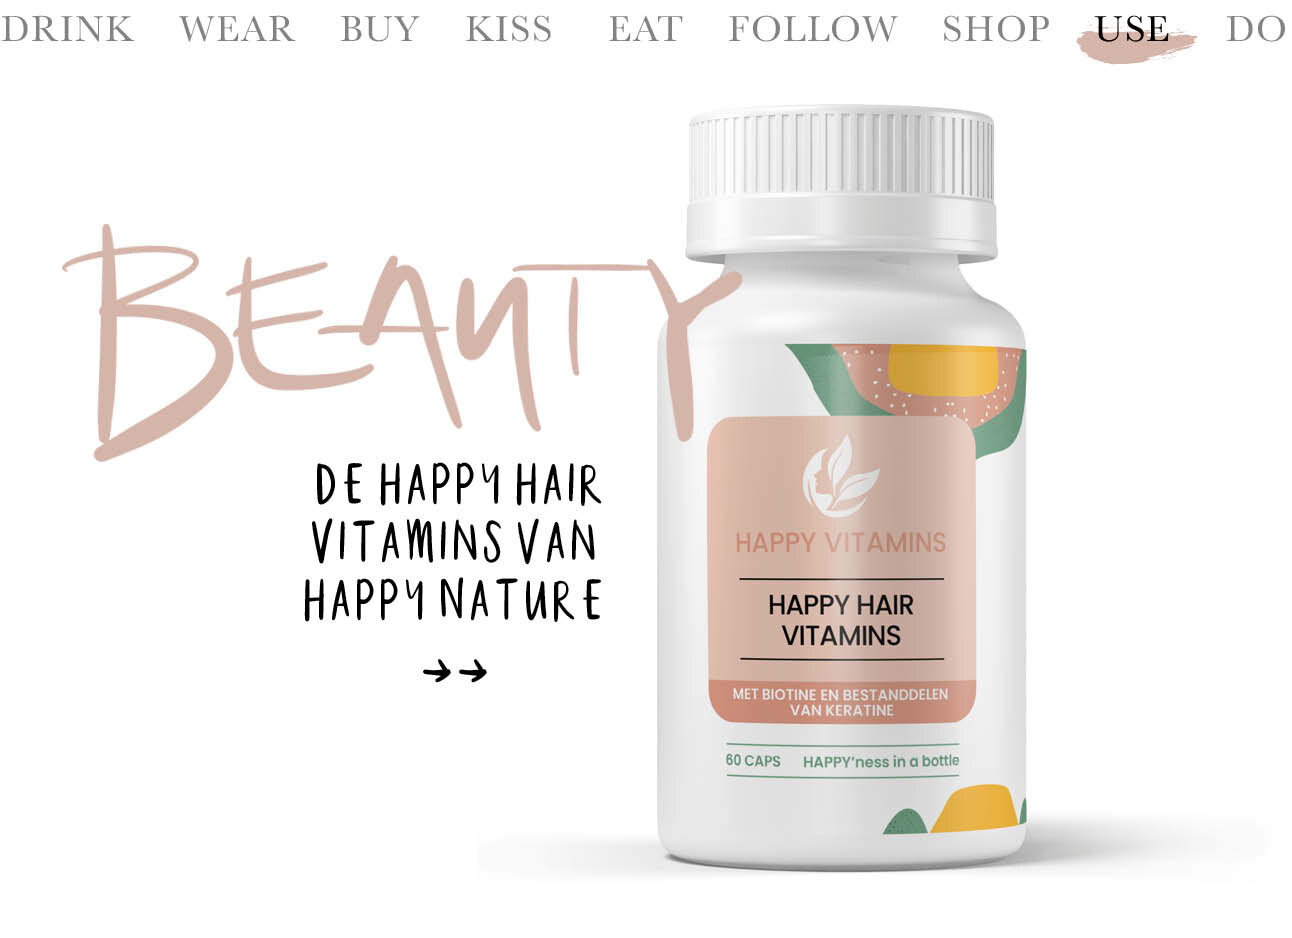 Today we use - happy hair vitamins